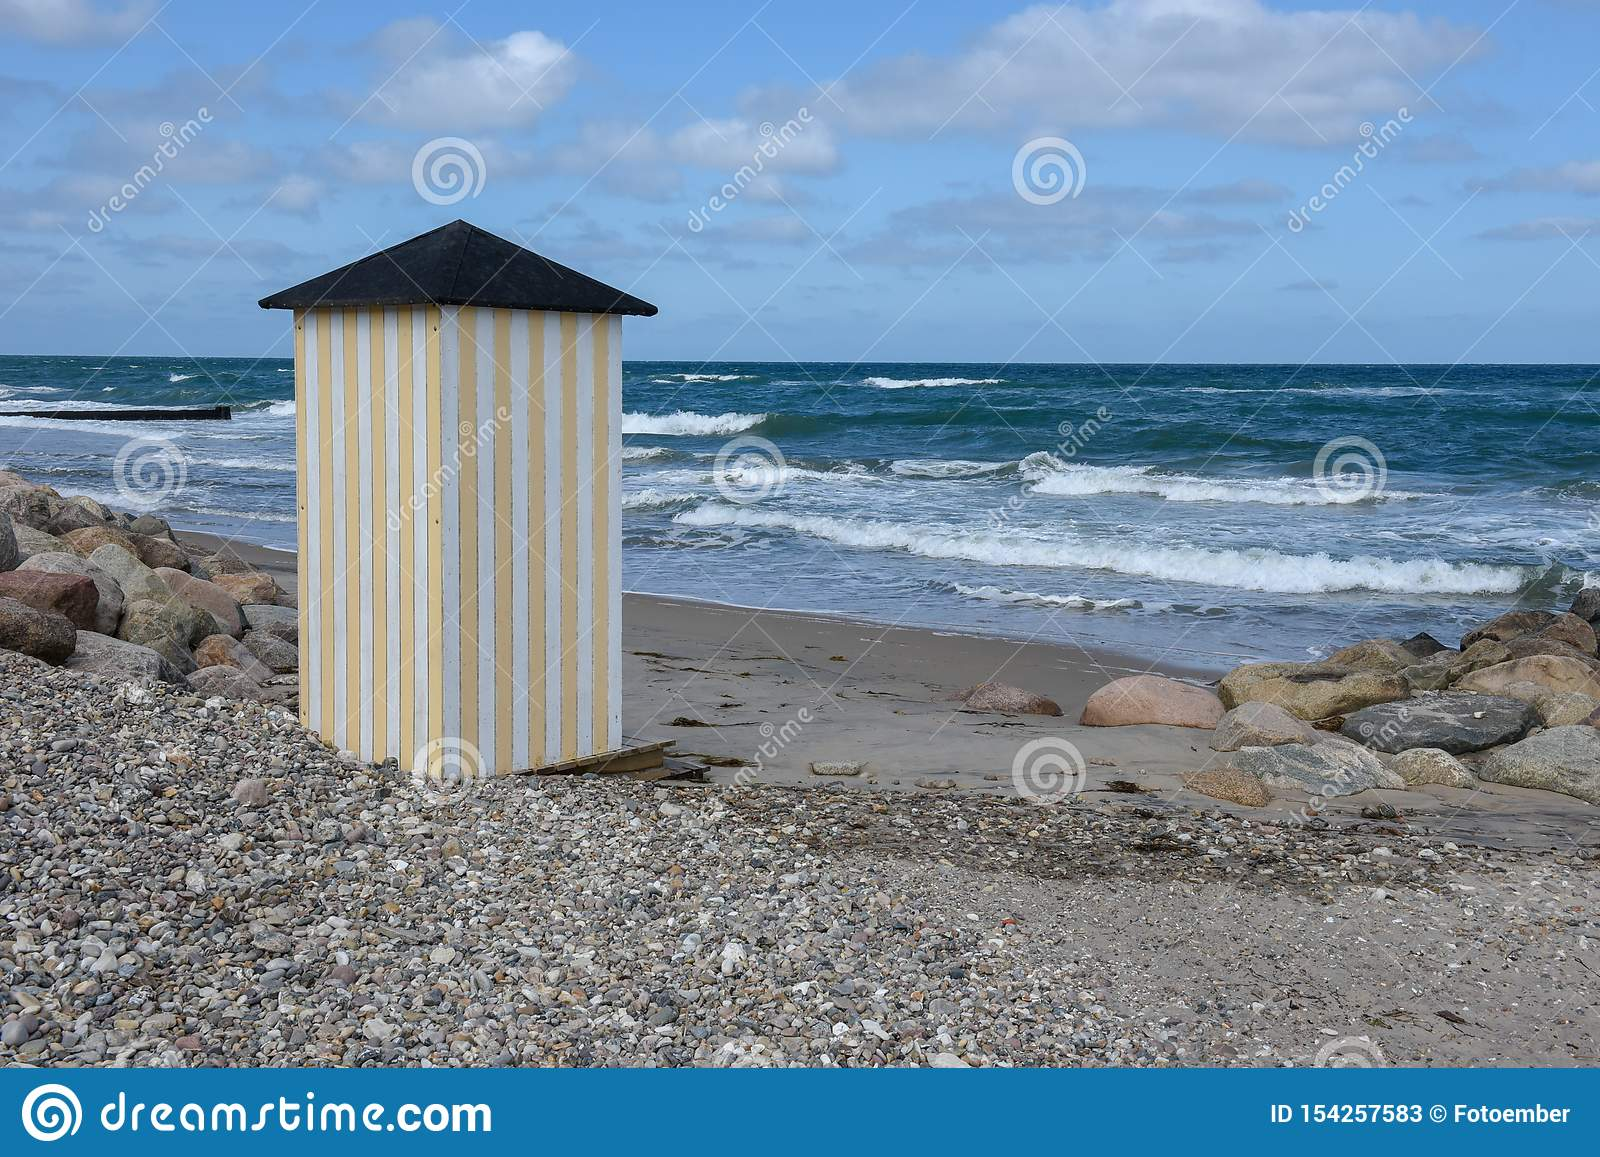 Beach Cabins Of The Coast At Regeleje In Denmark Stock Image